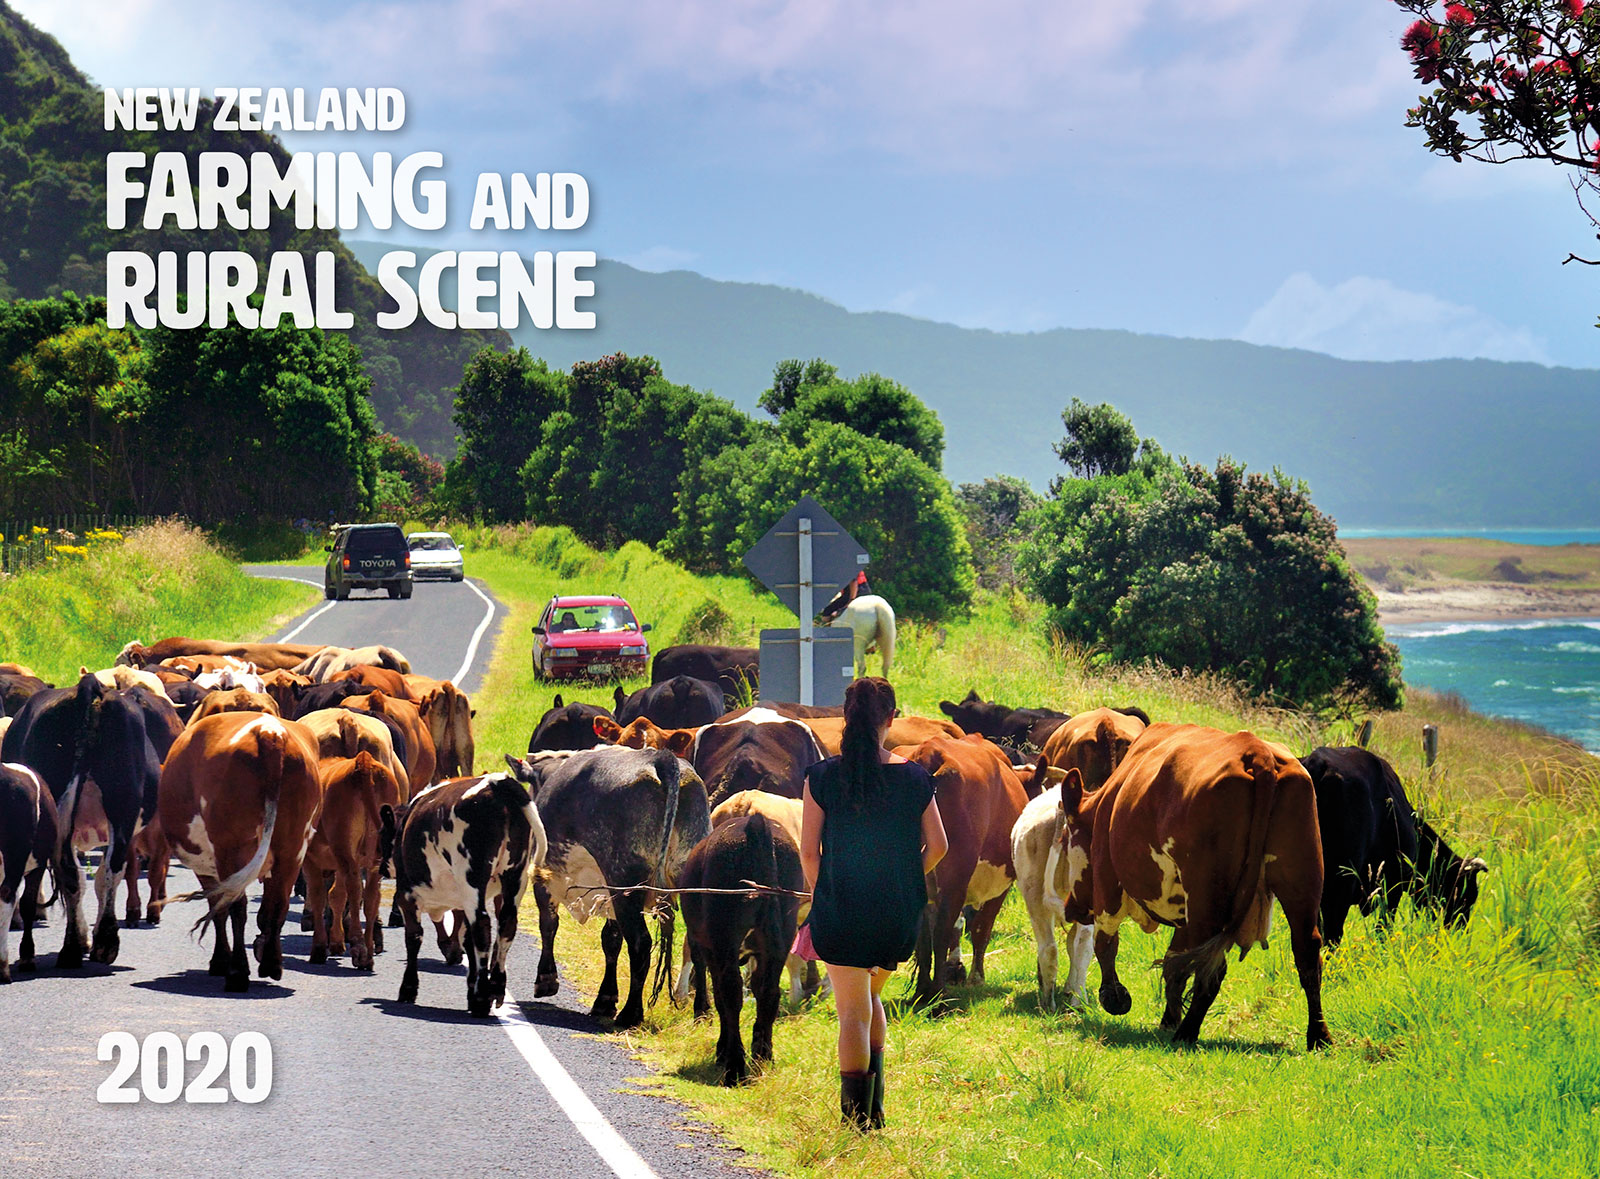 New Zealand Farming and Rural Scene 2019